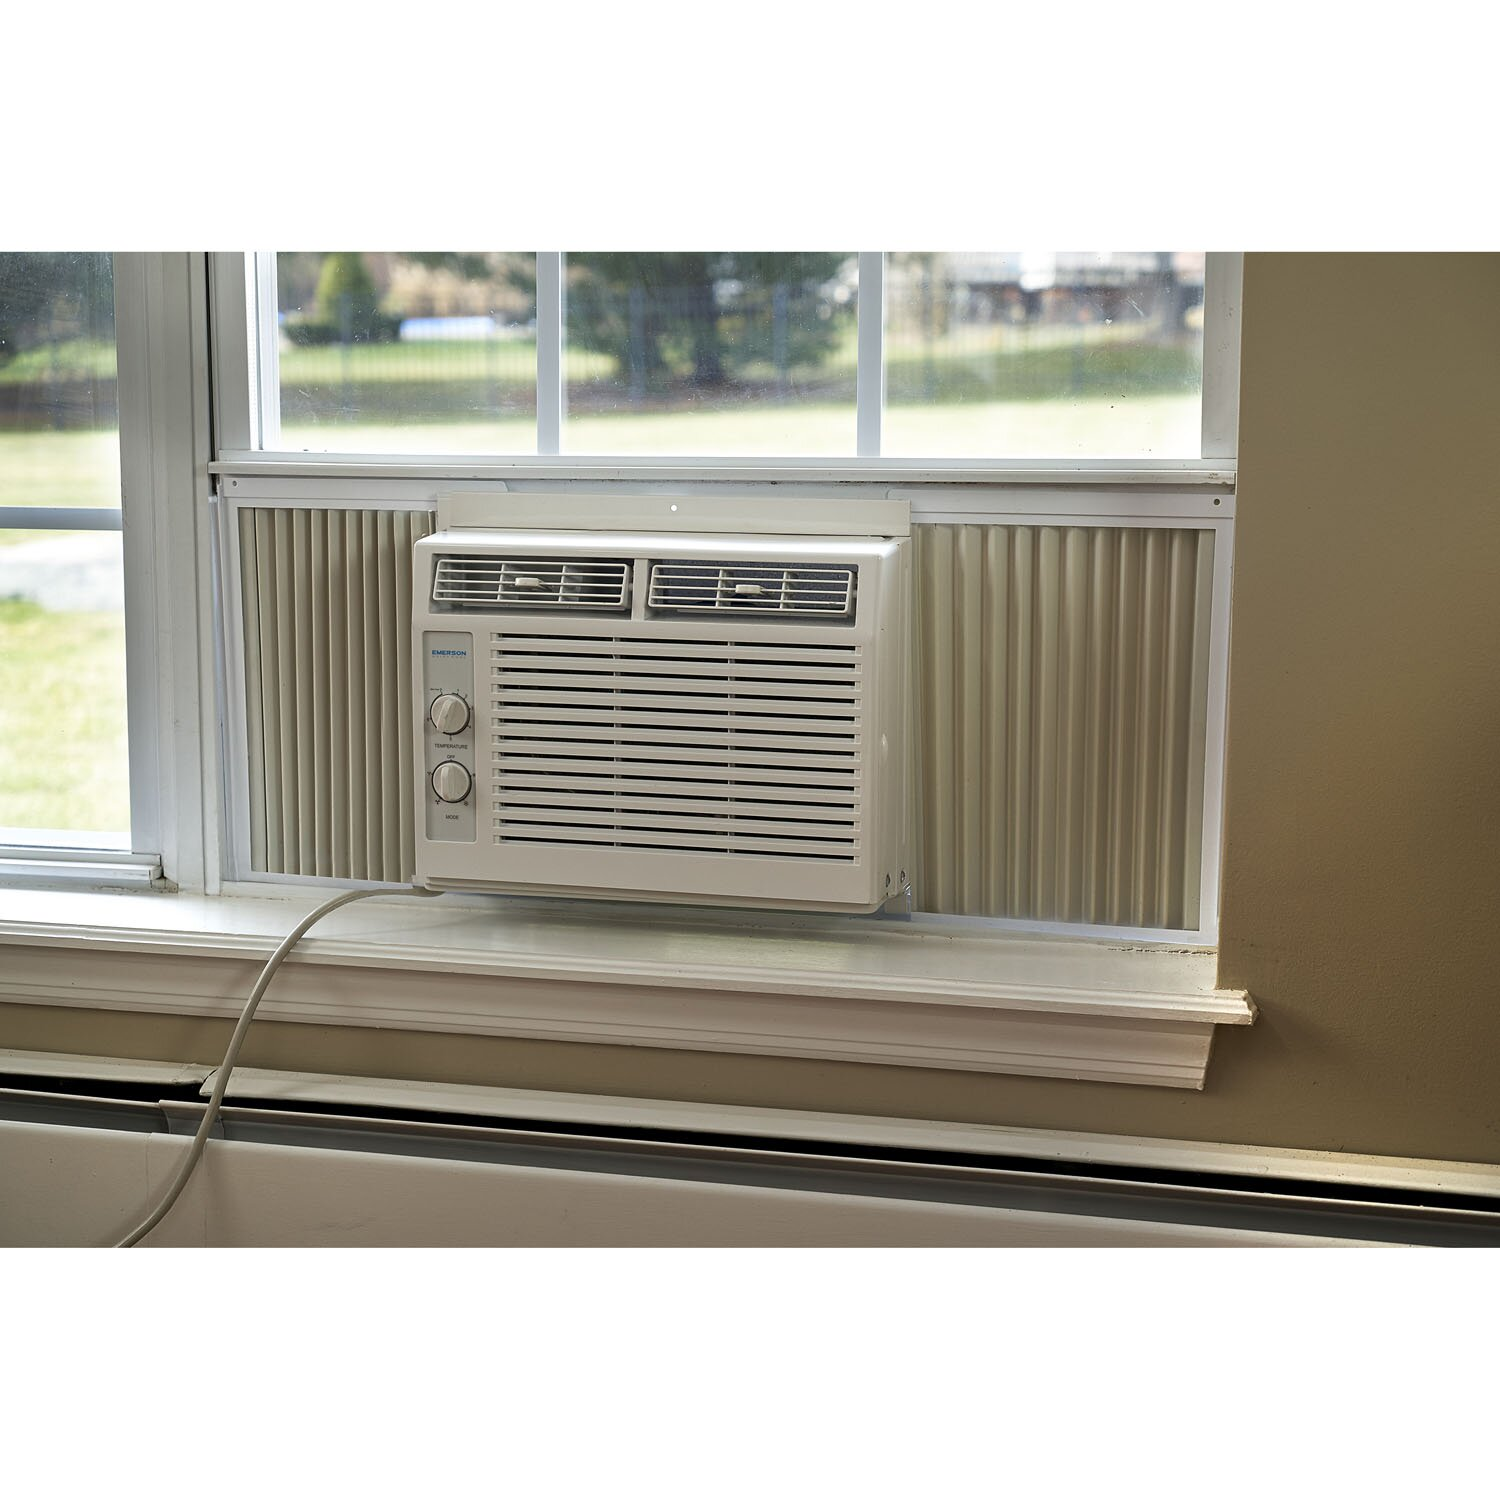 #5F5038 Emerson Quiet Kool 5 000 BTU Window Air Conditioner  Most Recent 12760 Koolking Air Conditioner image with 1500x1500 px on helpvideos.info - Air Conditioners, Air Coolers and more